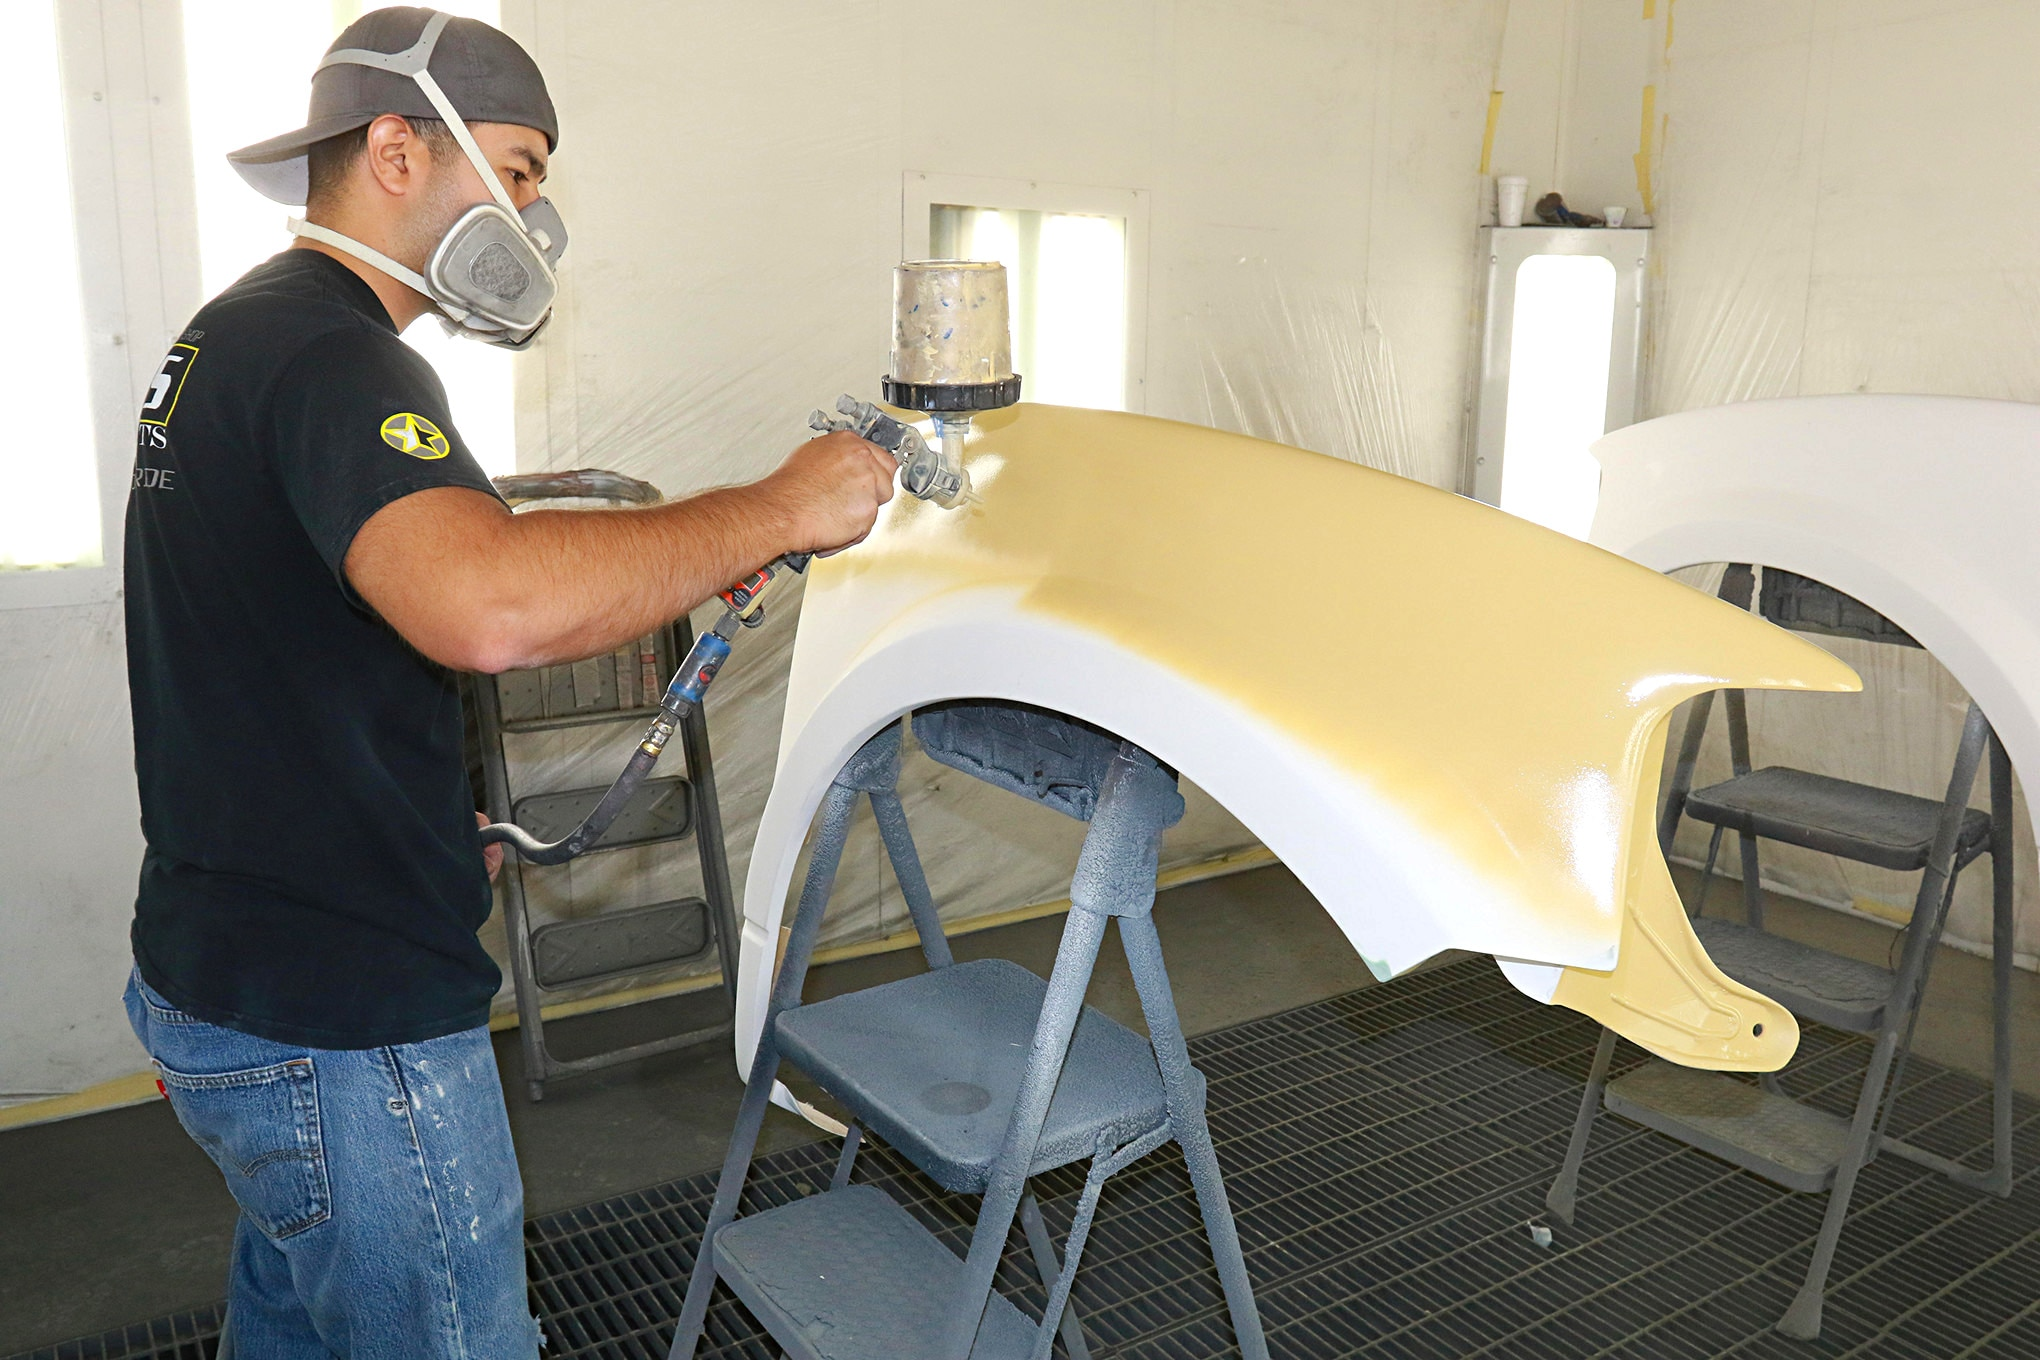 A primer/surfacer is used. This will fill in any problems and give the fenders a good thick coat to work with.